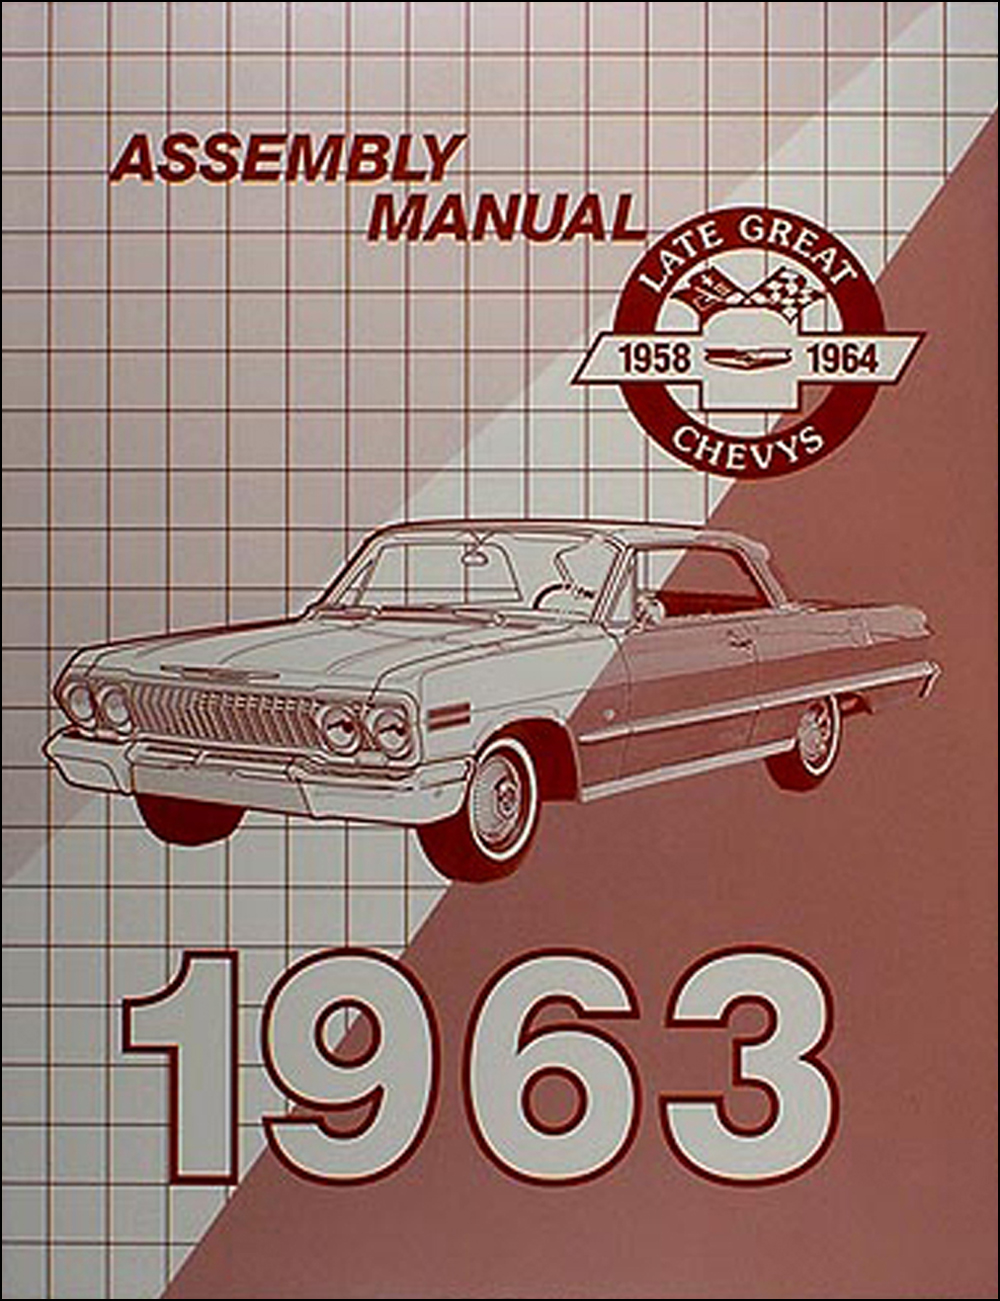 hight resolution of 1963 chevrolet assembly manual reprint biscayne bel air impala ss1963 chevy wiring diagram manual reprint